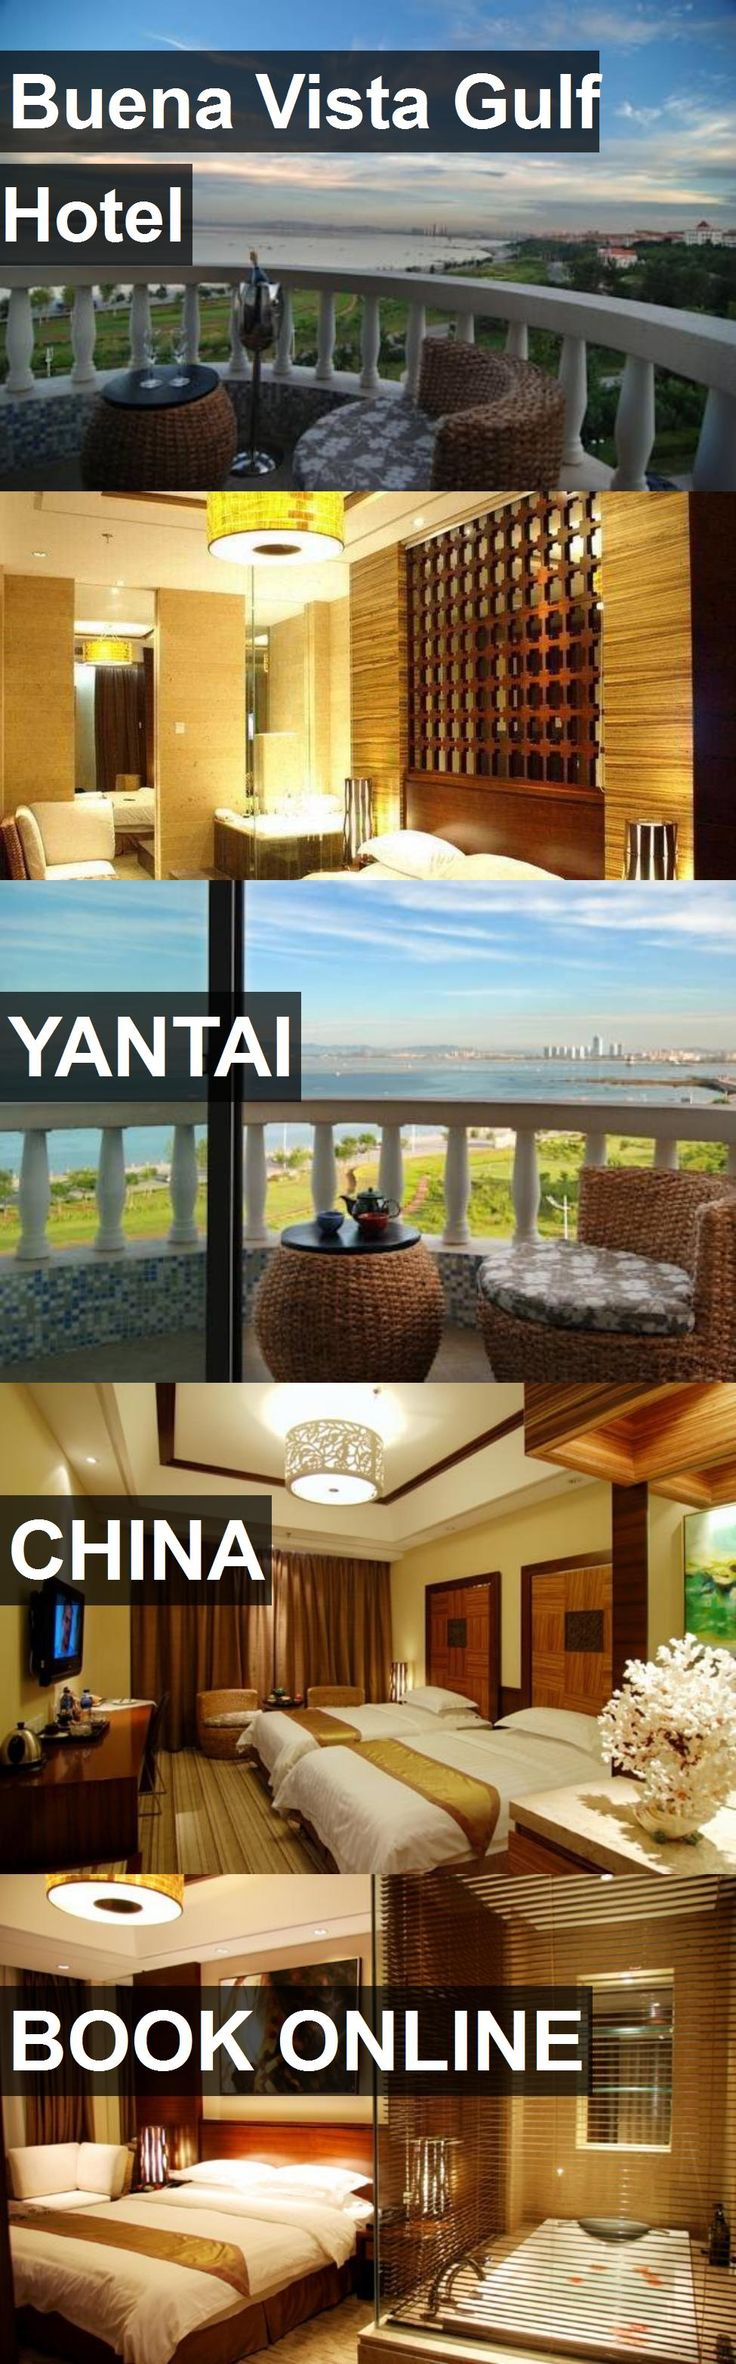 Hotel Buena Vista Gulf Hotel in Yantai, China. For more information, photos, reviews and best prices please follow the link. #China #Yantai #BuenaVistaGulfHotel #hotel #travel #vacation